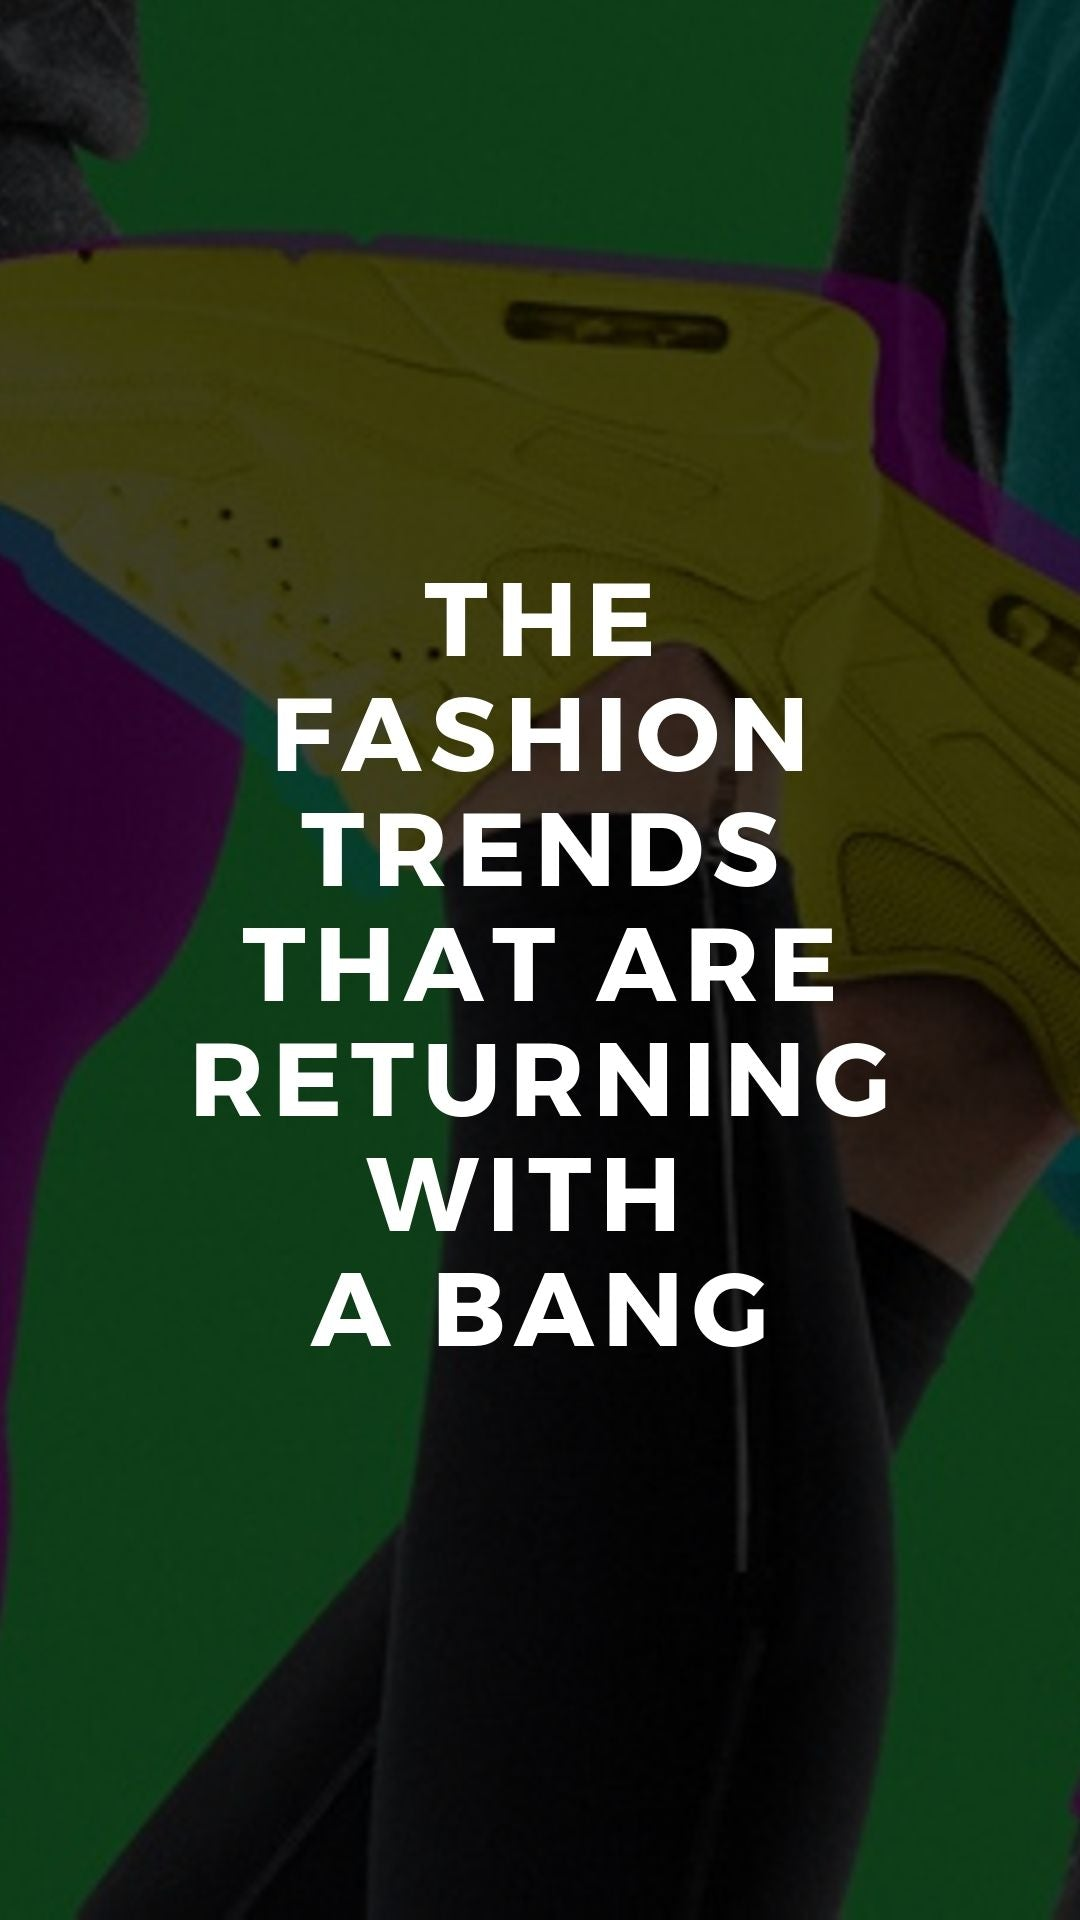 Comeback Kings: The Fashion Trends That Are Returning With a Bang